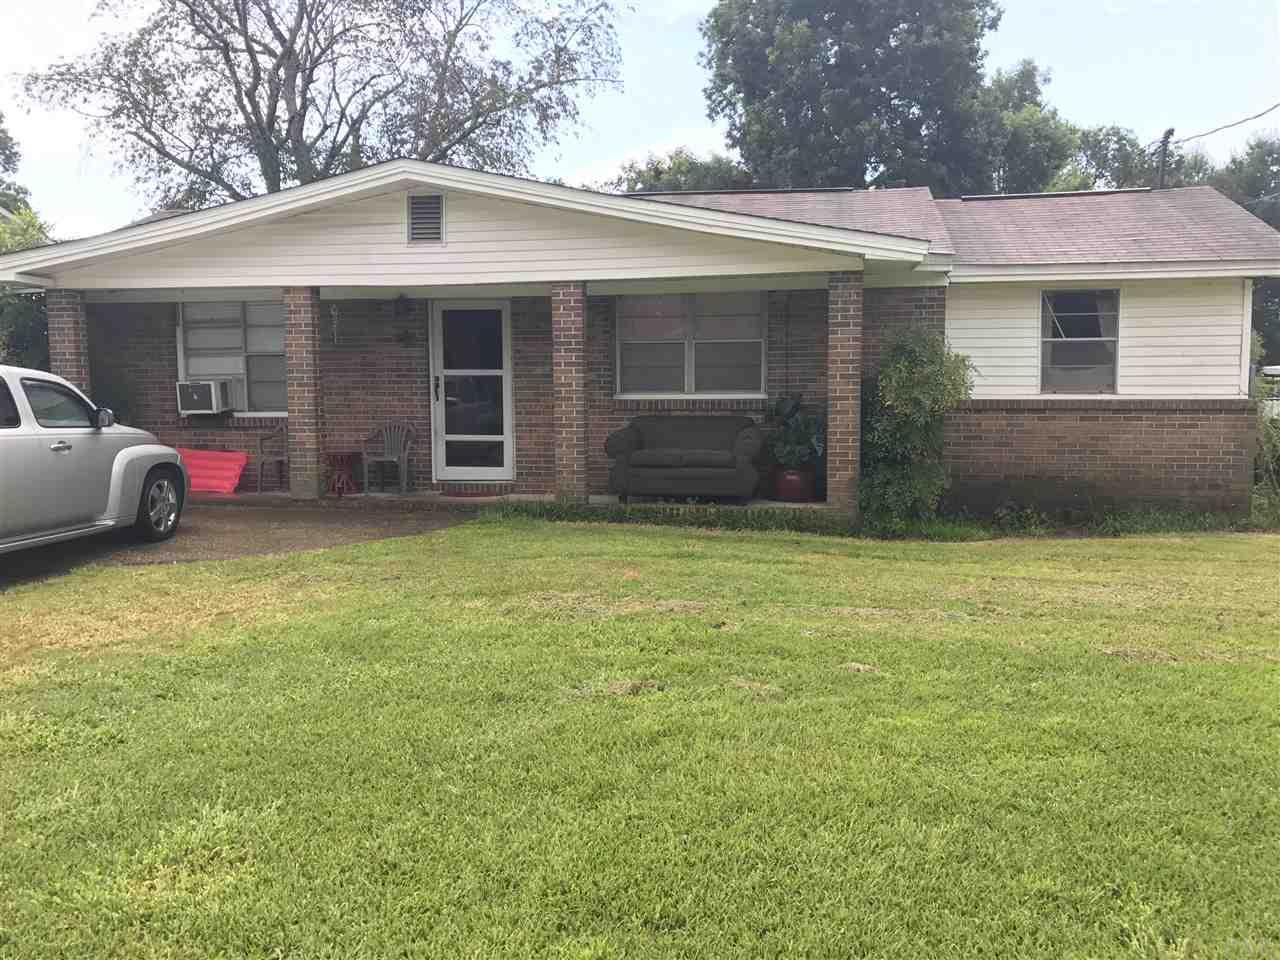 529 w detroit blvd pensacola fl mls 522577 era